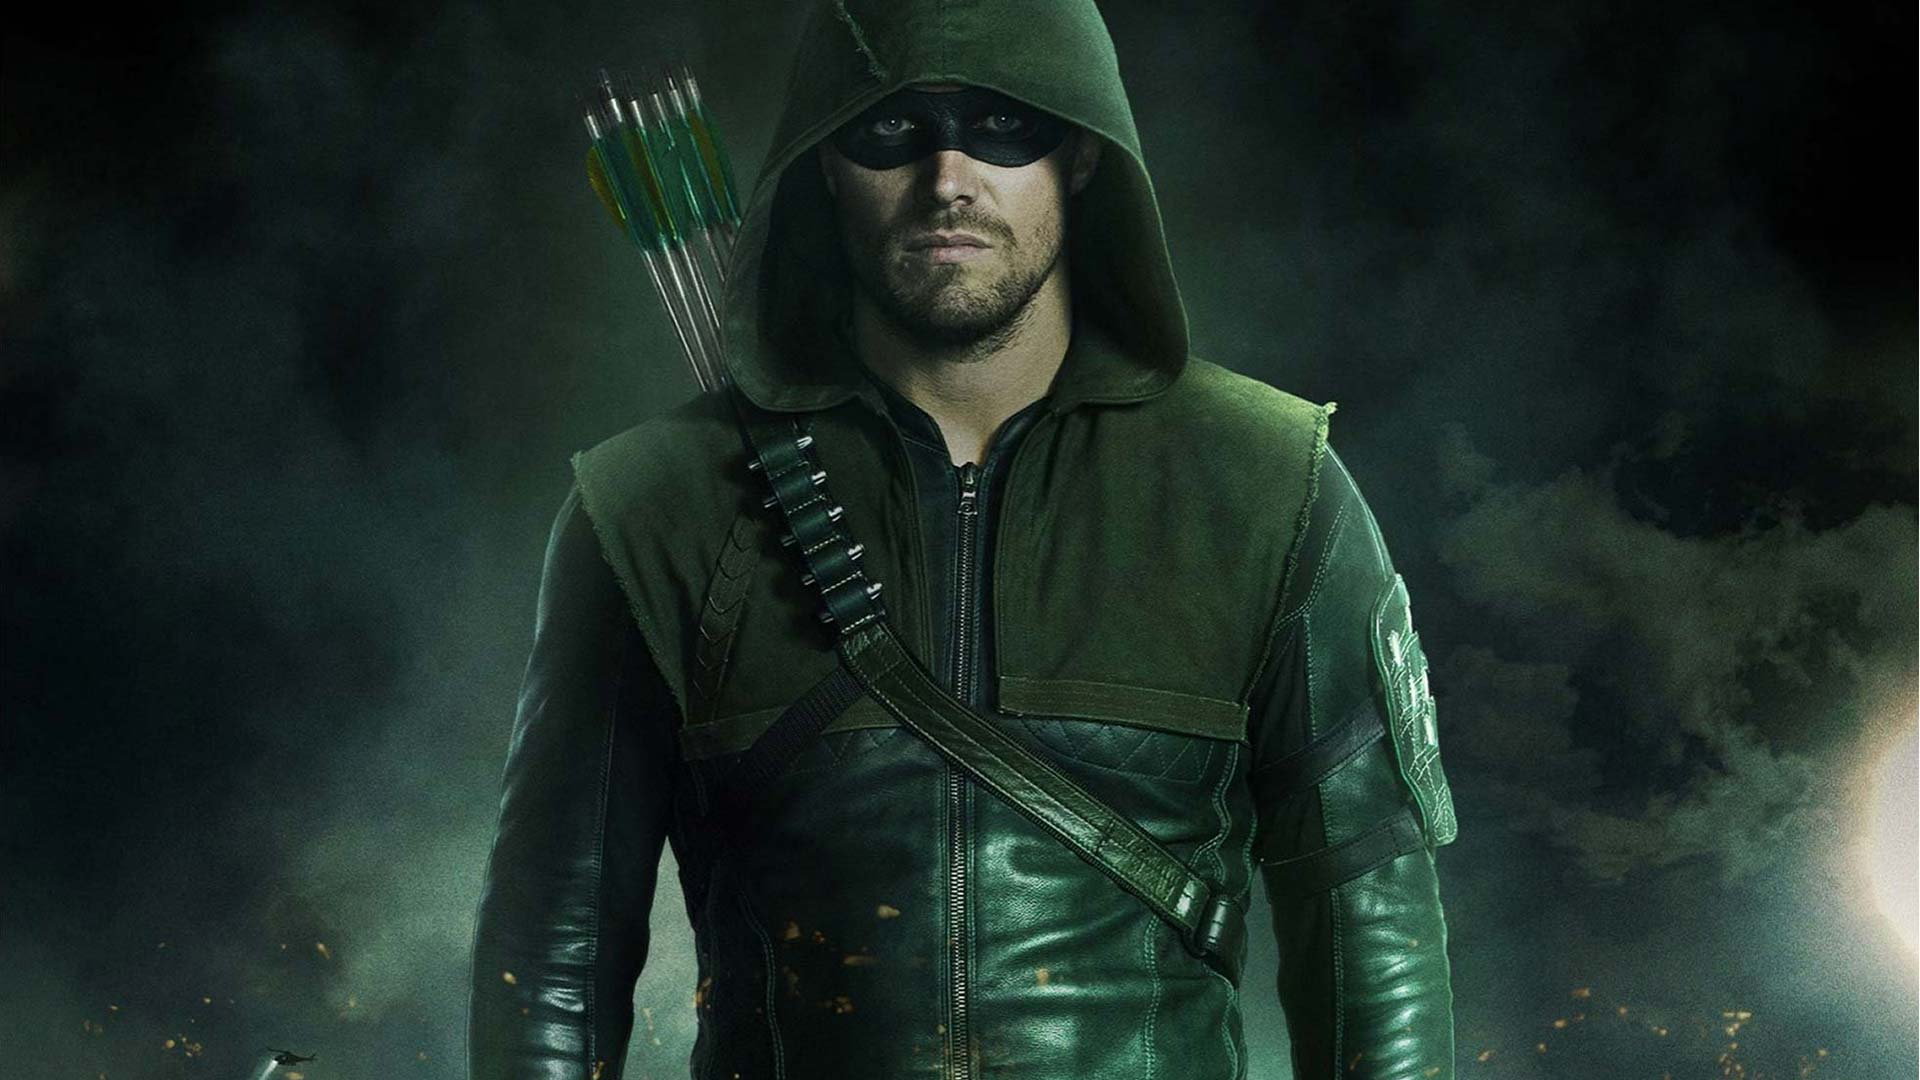 It turns out Stephen Amell, better known as Green Arrow from CW's Arrow, has proved he's also a real life super hero…